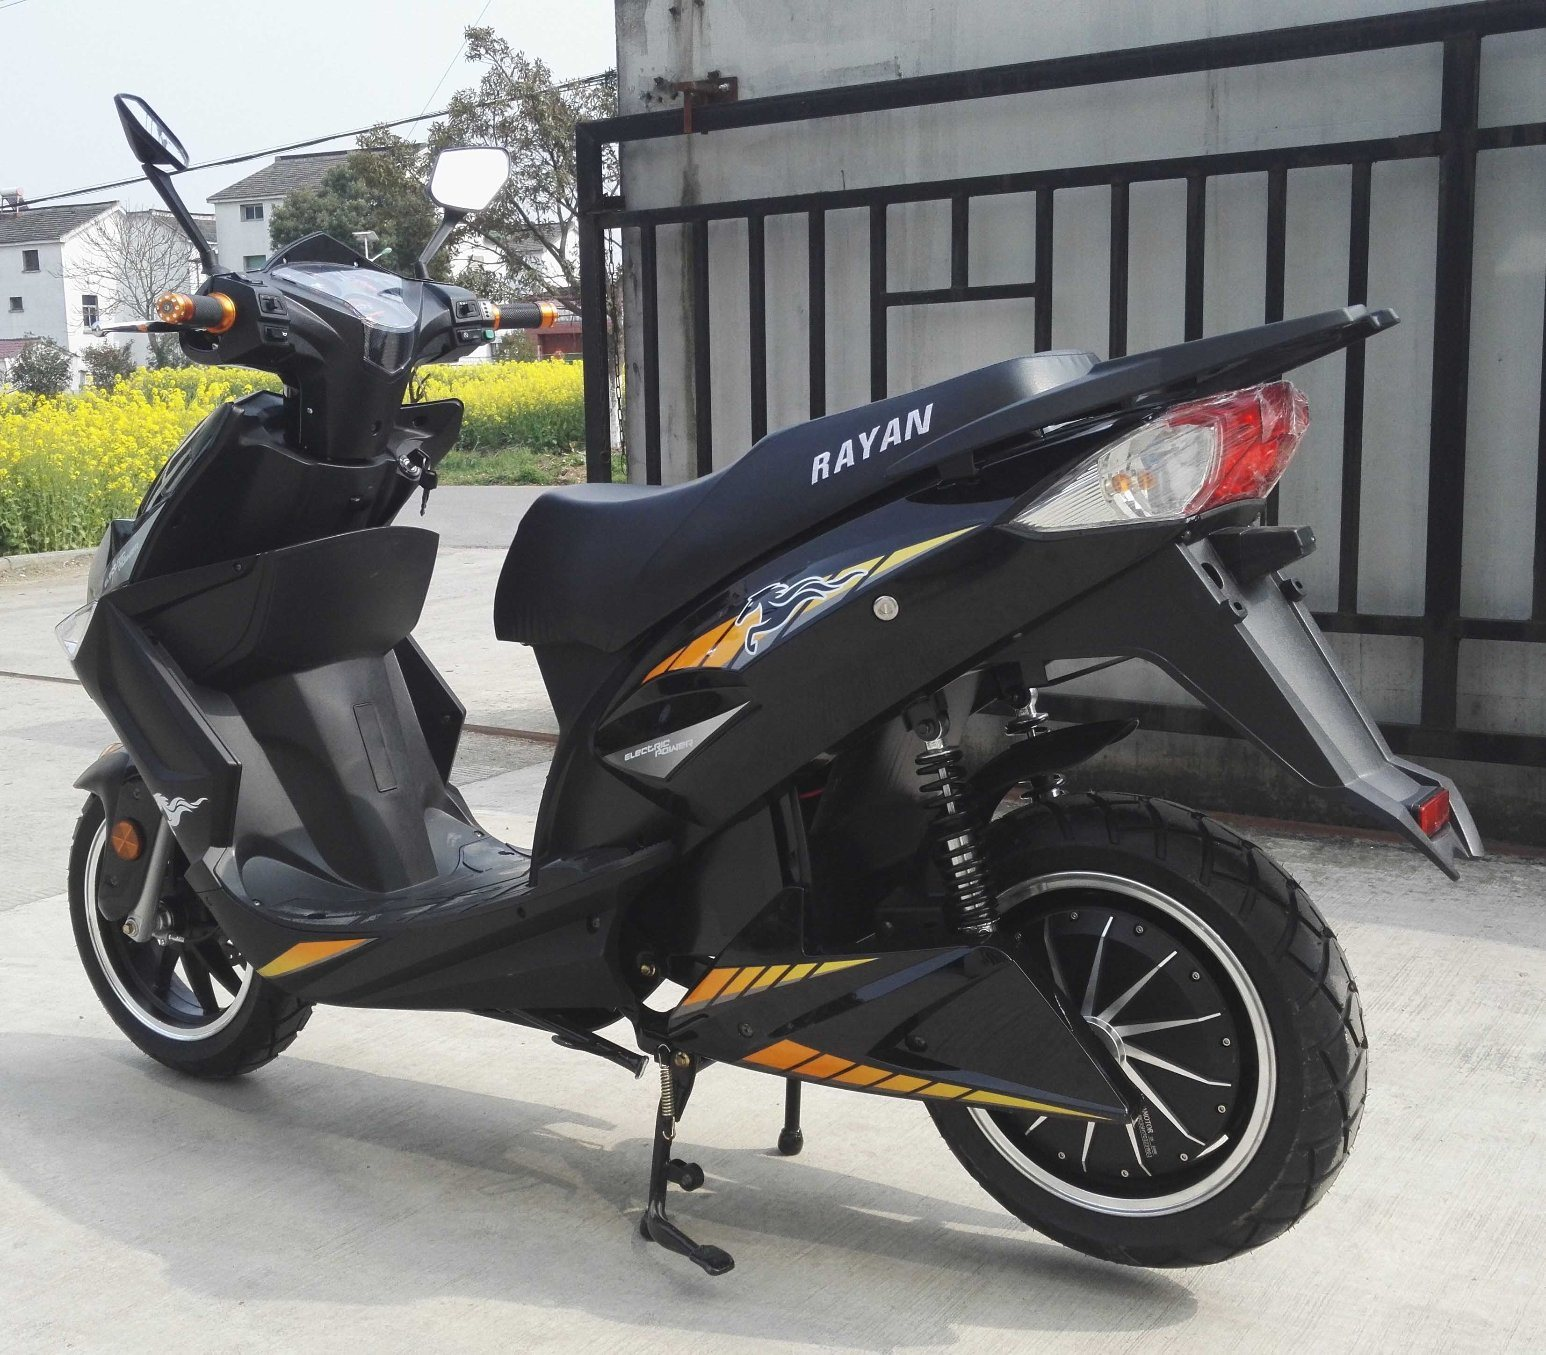 South America Hot Sales 1000W/1500W/2000W 72V20ah Lead Acid/Lithium Battery Electric Motorcycle